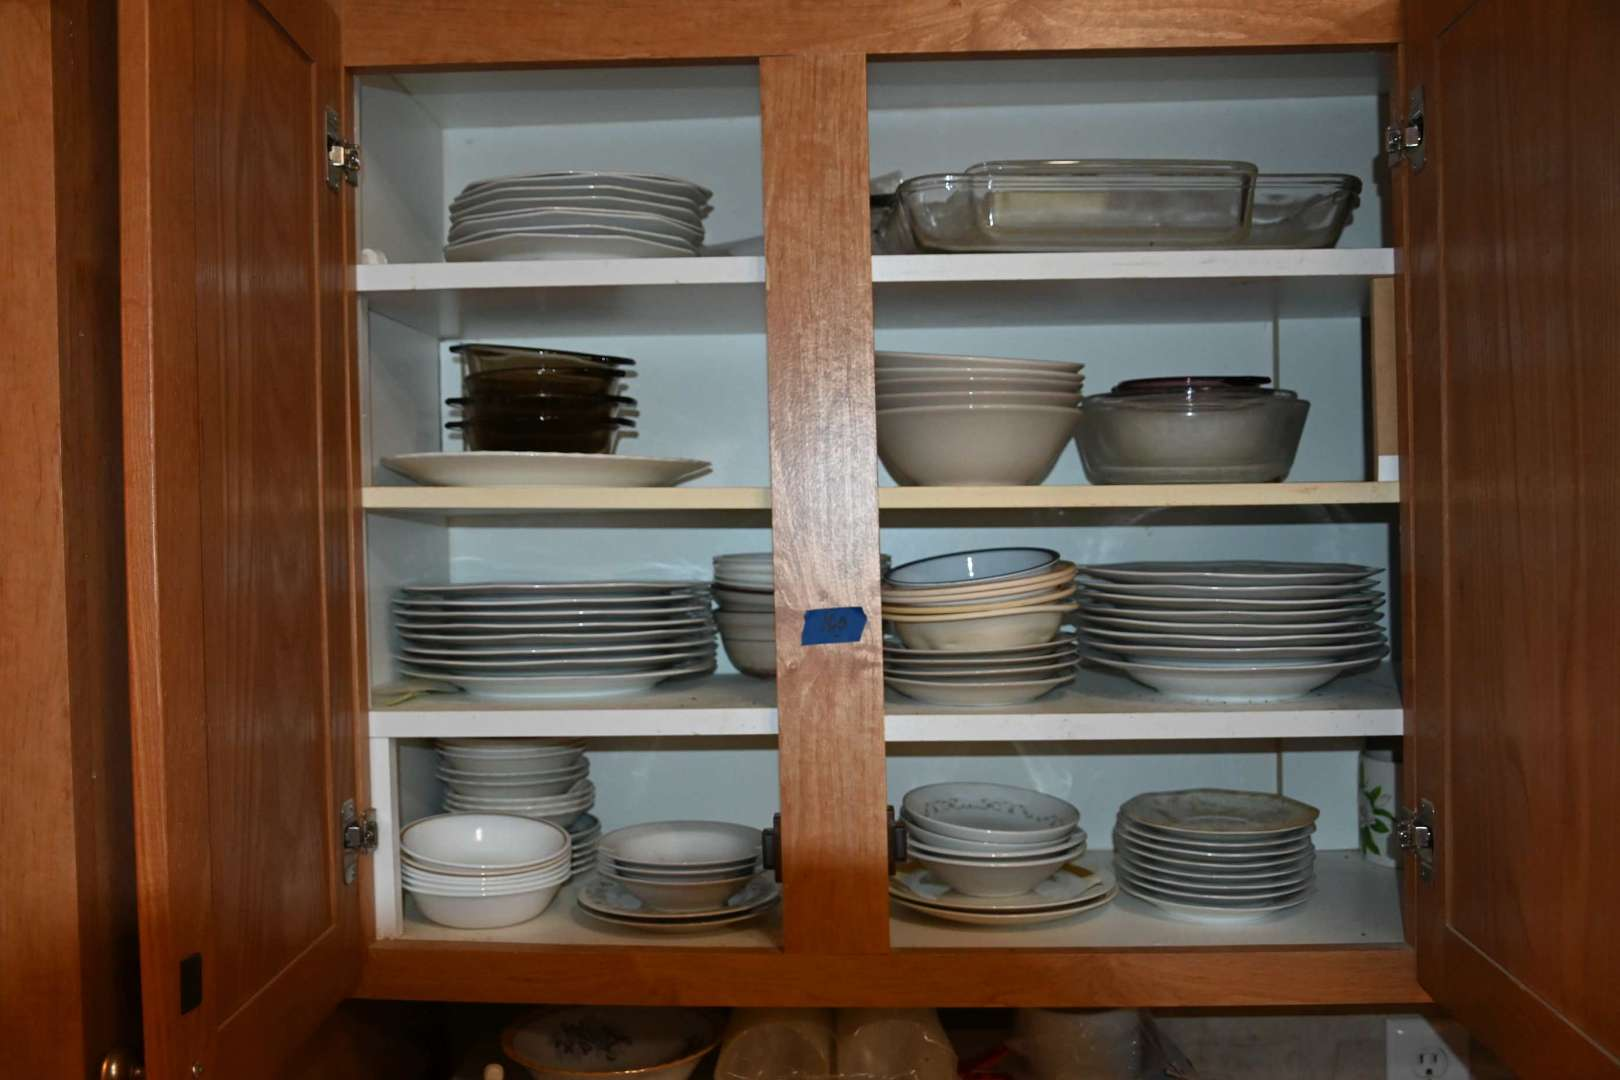 Lot # 160 Contents of uppper left kitchen cabinet